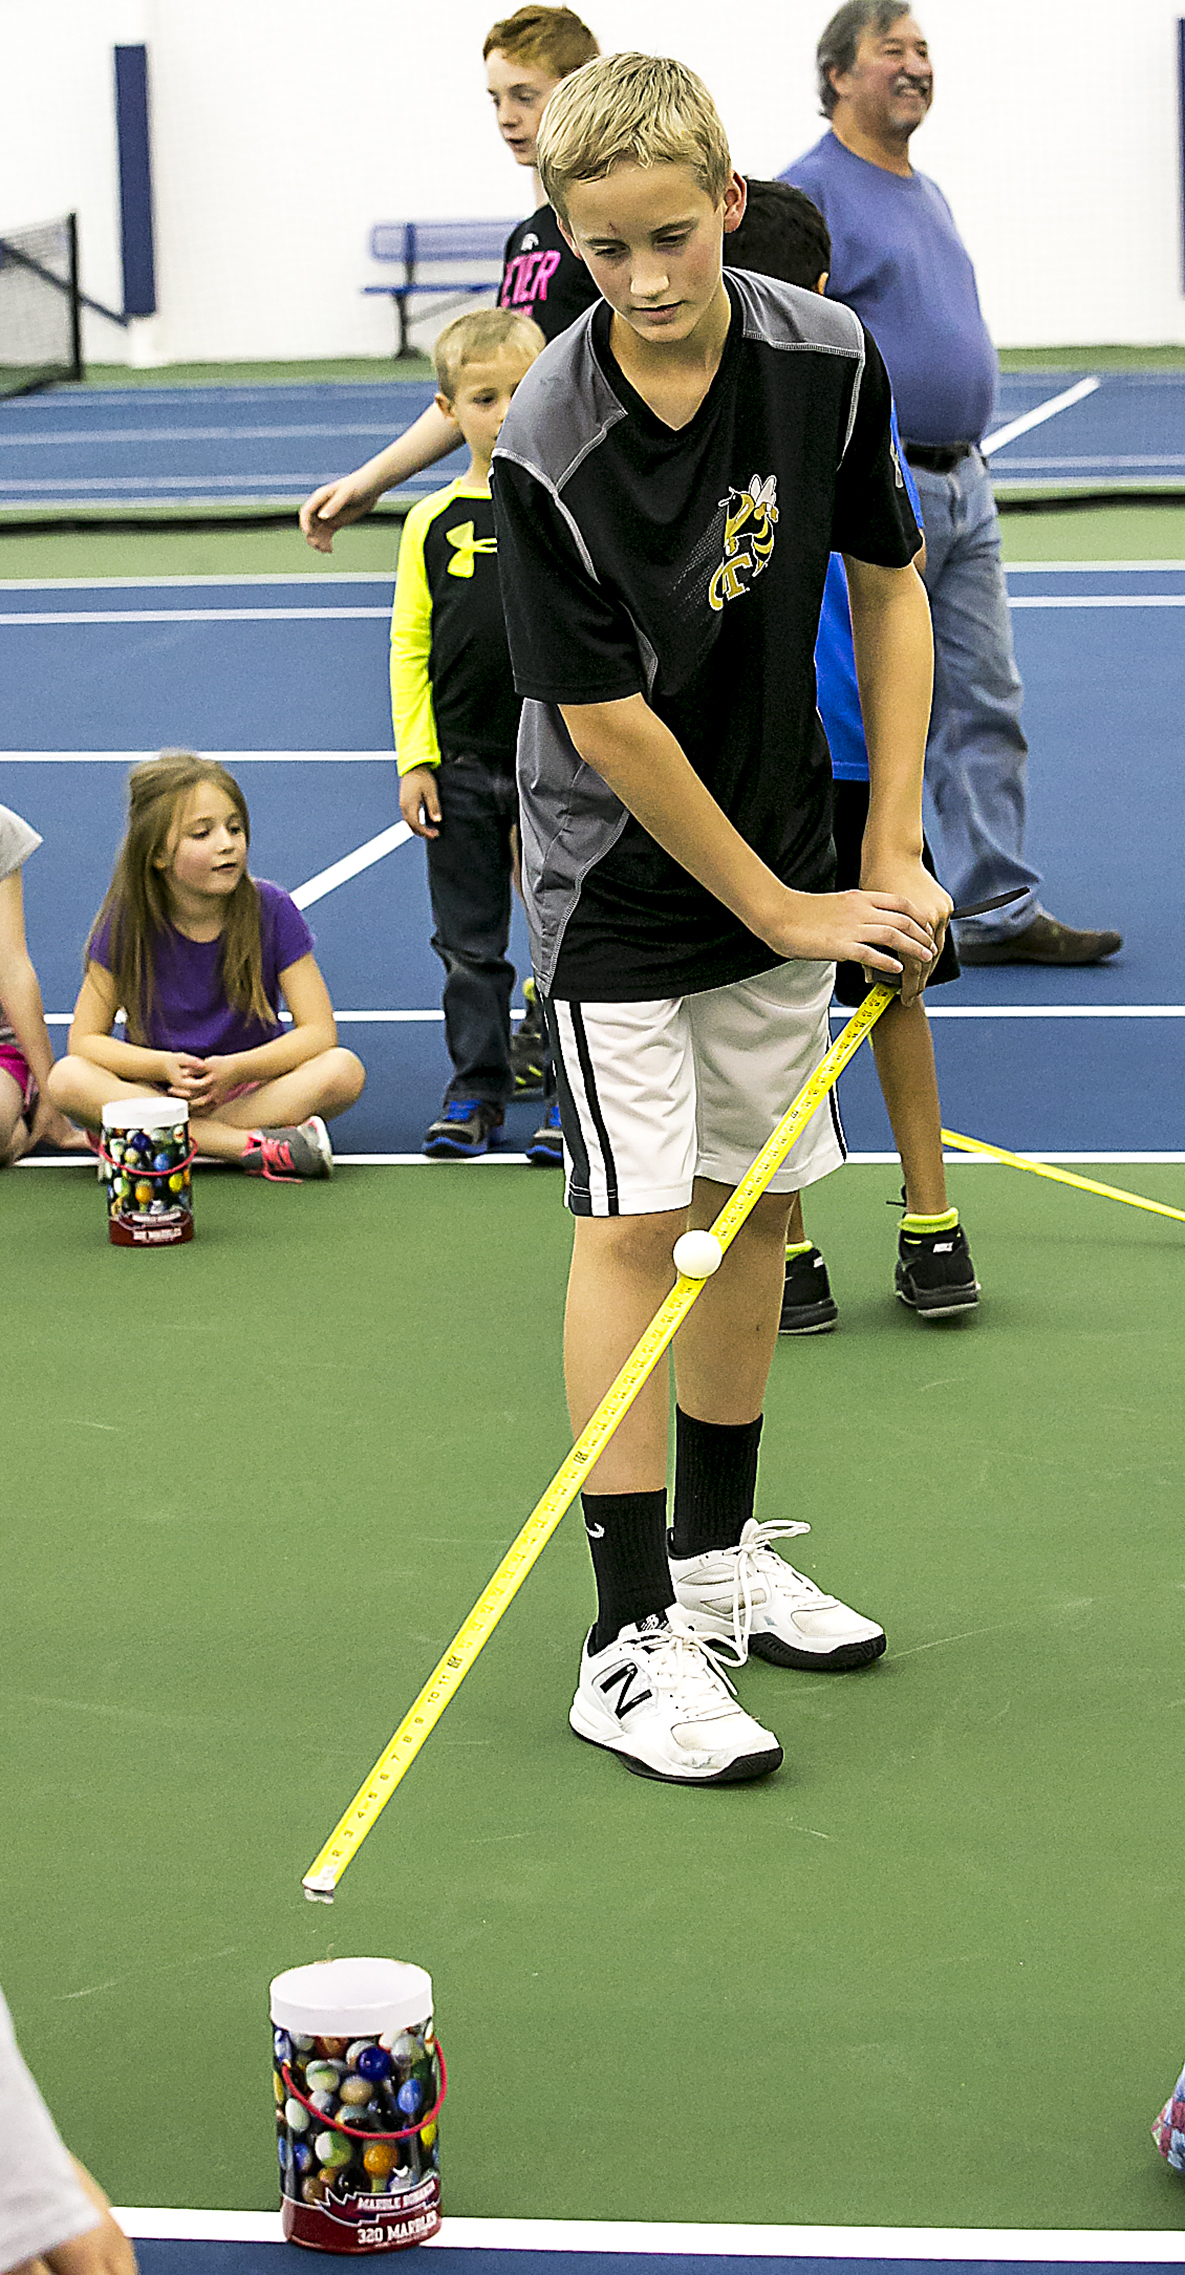 New $5.8 Million Indoor Tennis Complex held a Holiday Party for Murfreesboro Children